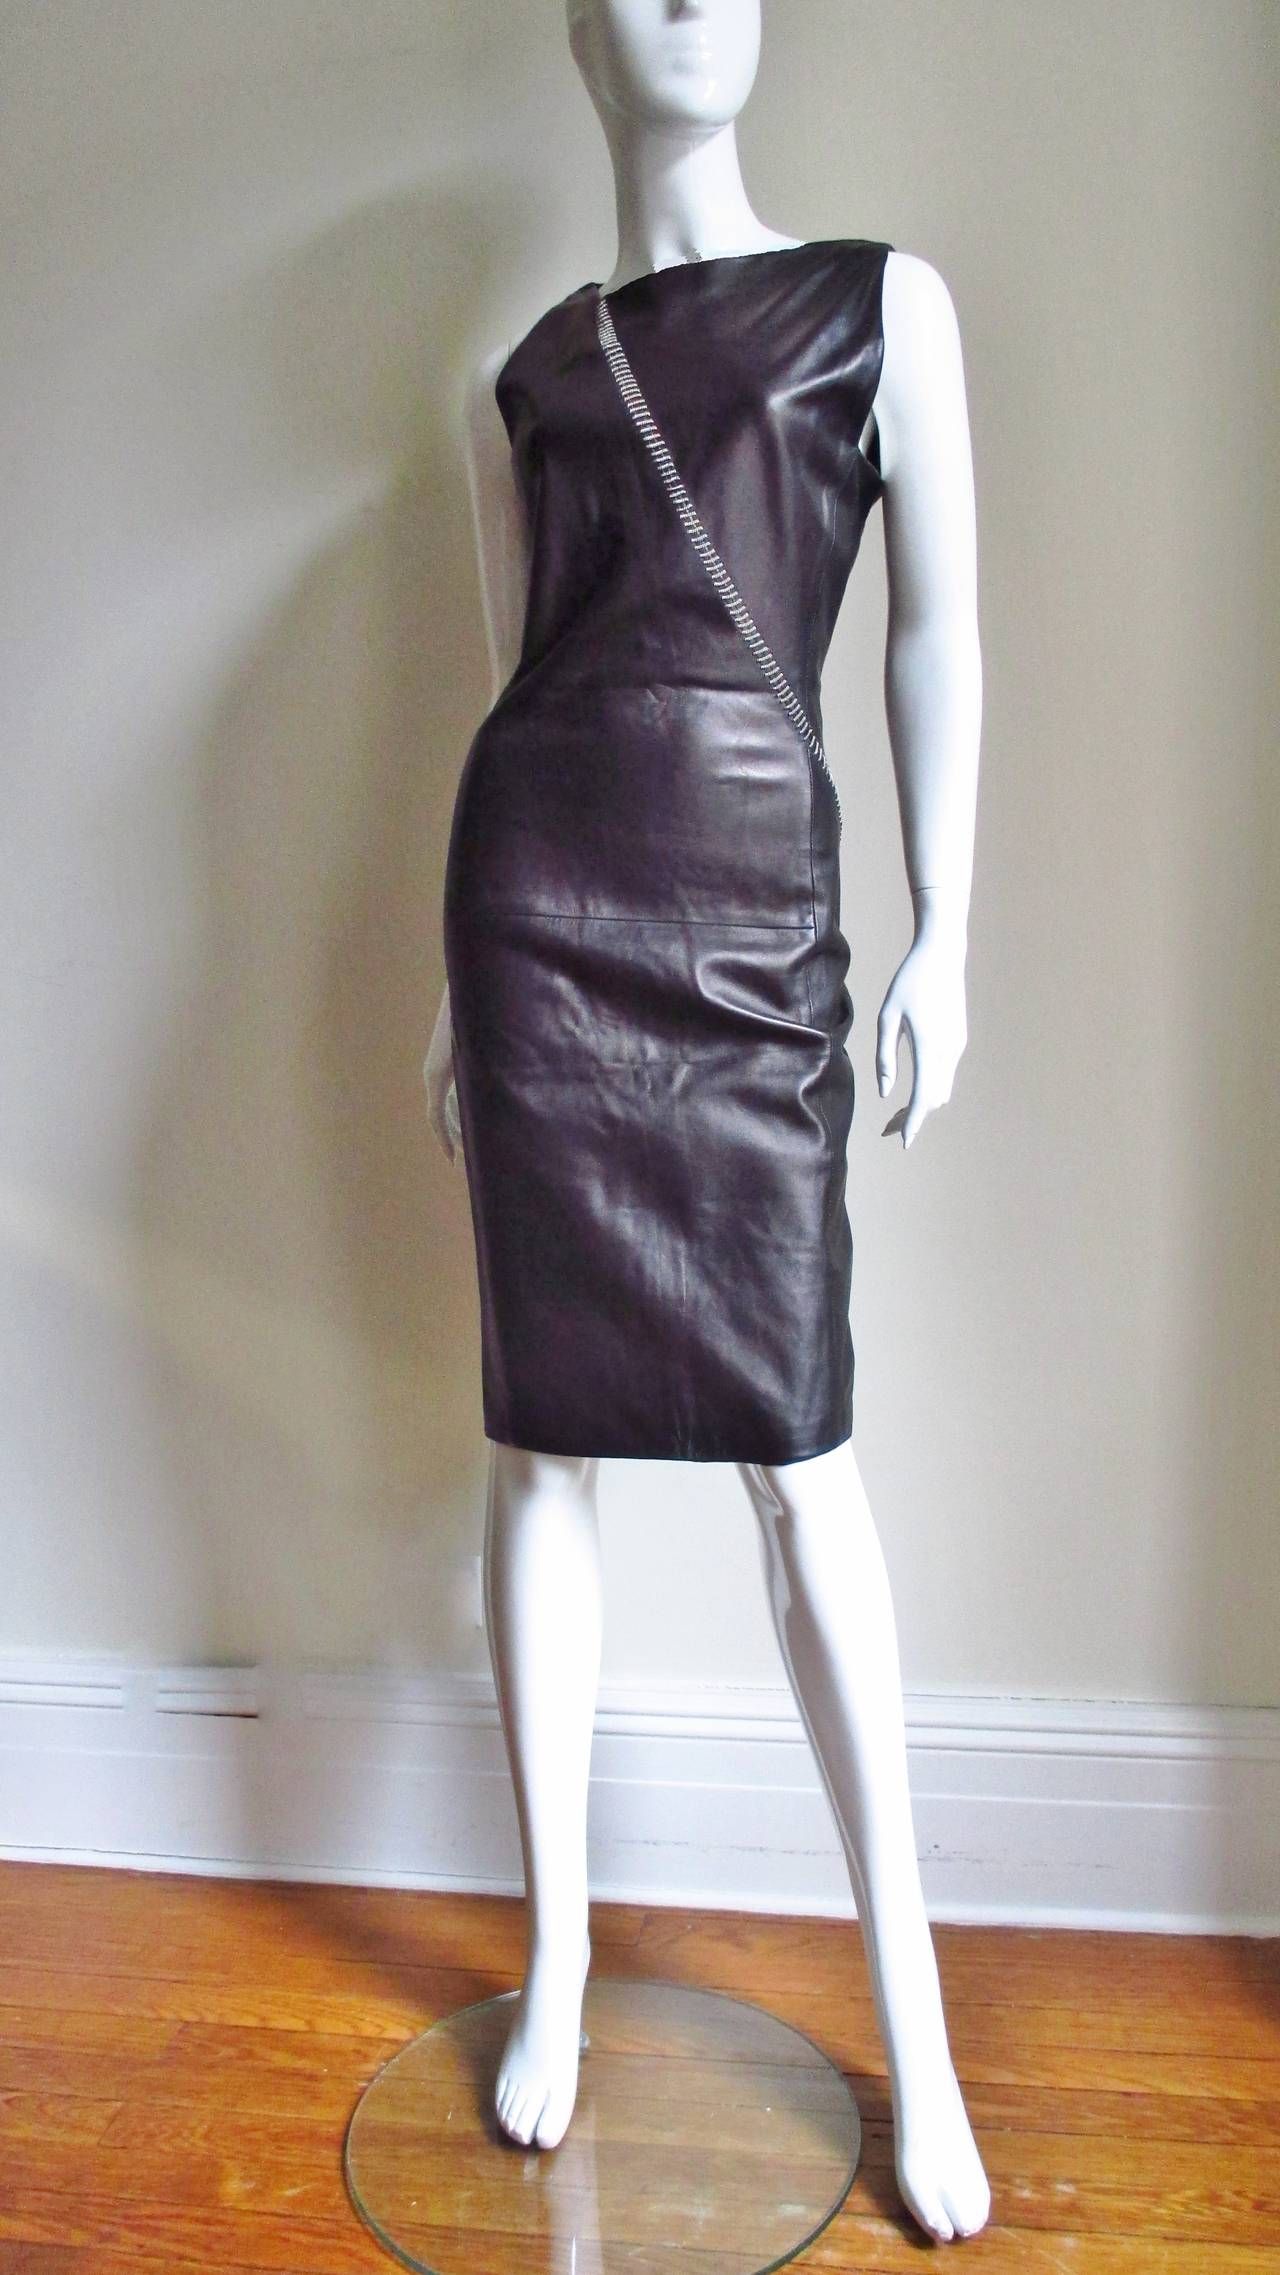 Gianni Versace Leather Dress With Chains 4